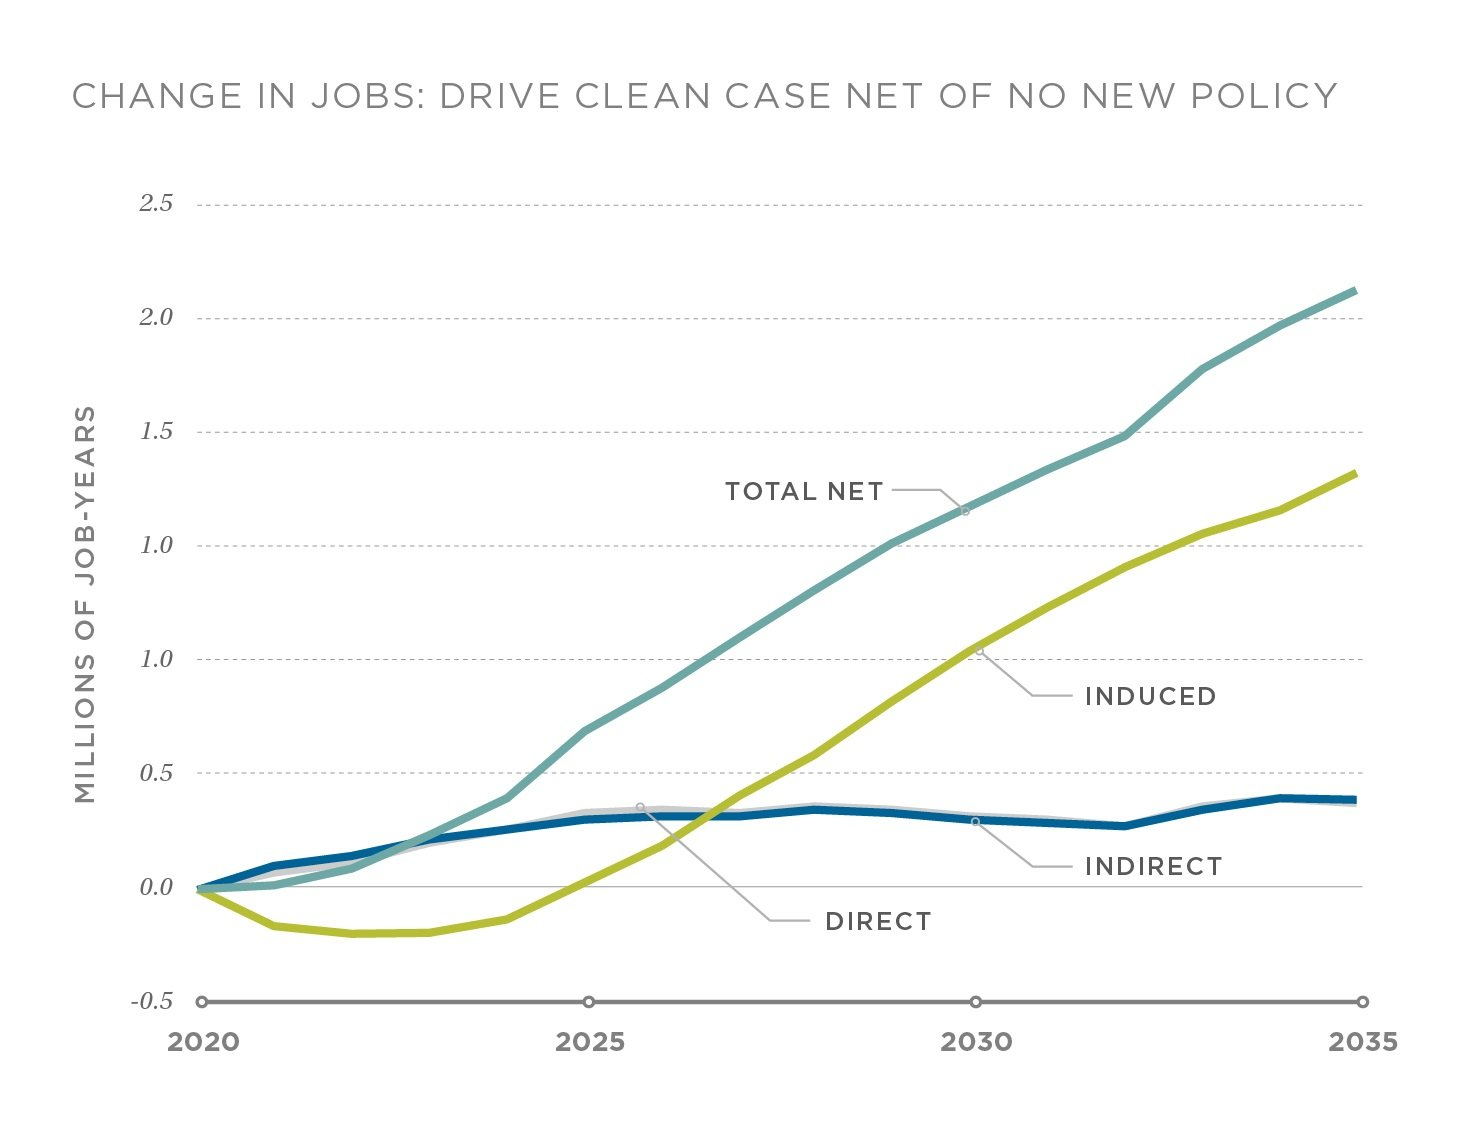 Change in direct, indirect, and induced jobs in the DRIVE Clean scenario compared to the No New Policy scenario, 2020-2035.